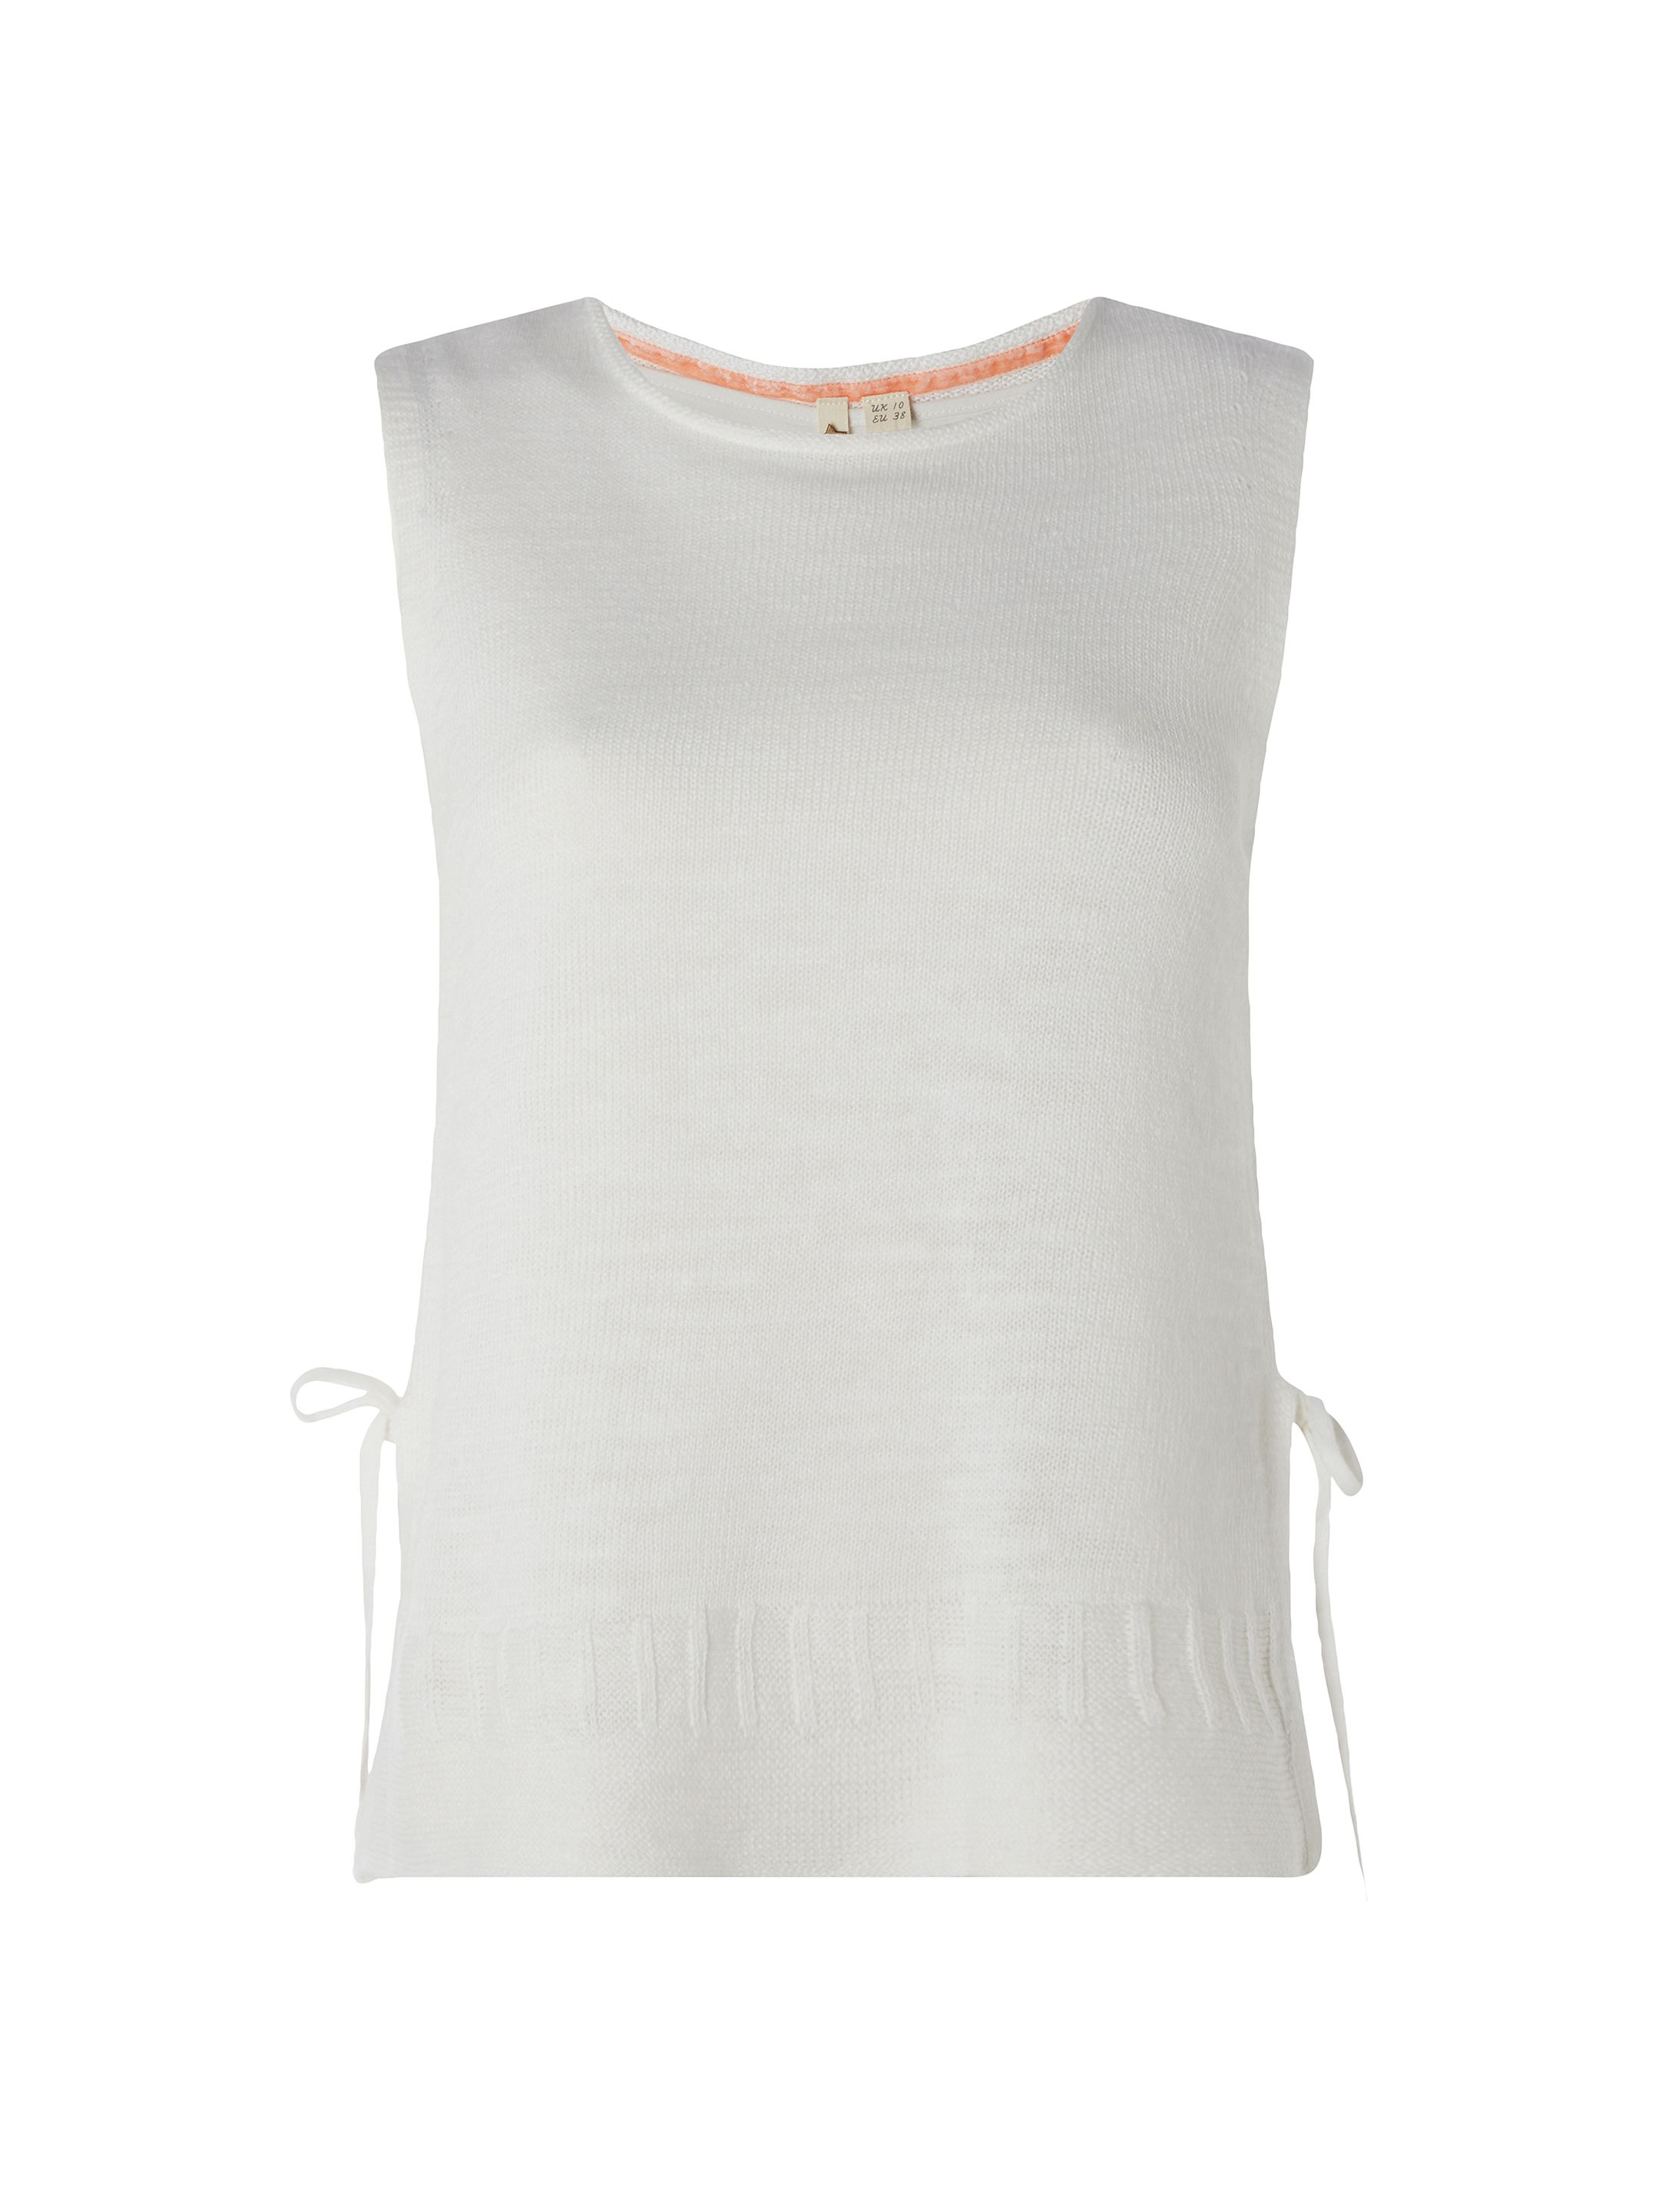 White Stuff Santa Maria Knit Vest, White